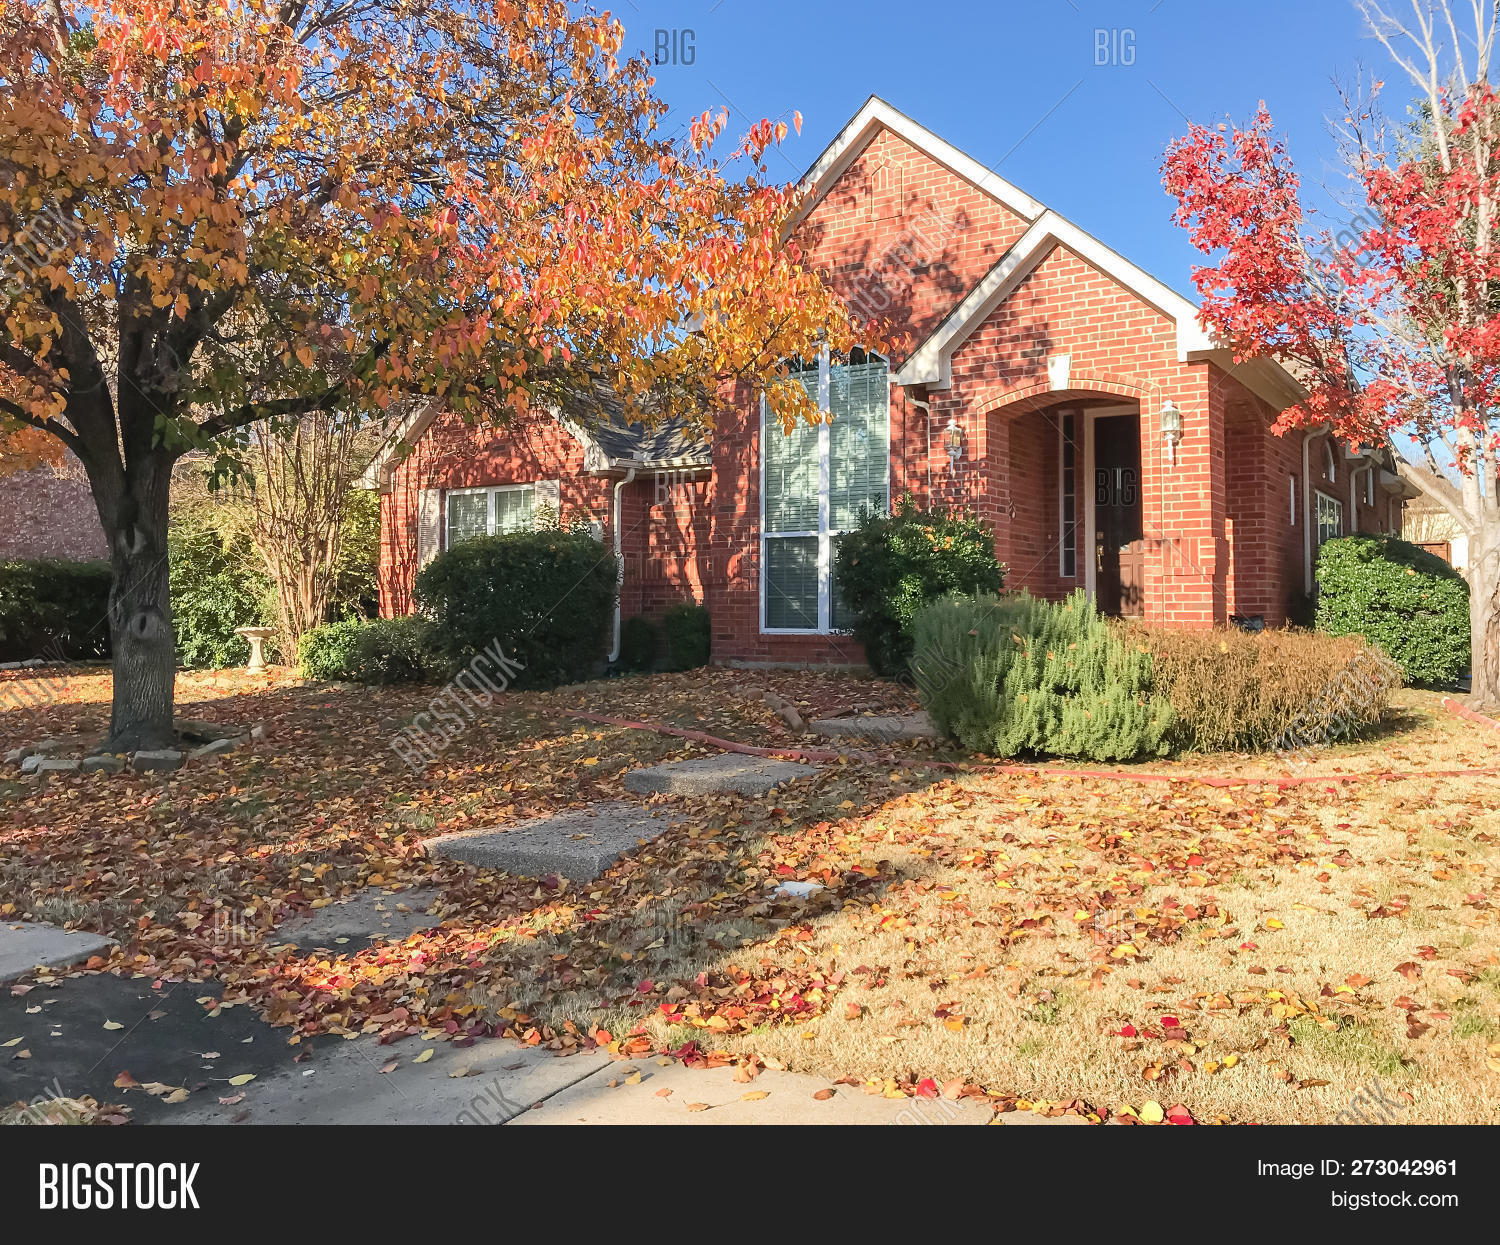 Typical single-family house near sidewalk in suburban Dallas, Texas, USA. Colorful fall foliage with thick carpet of Bradford Pear (Callery pear) leaves on tree and ground